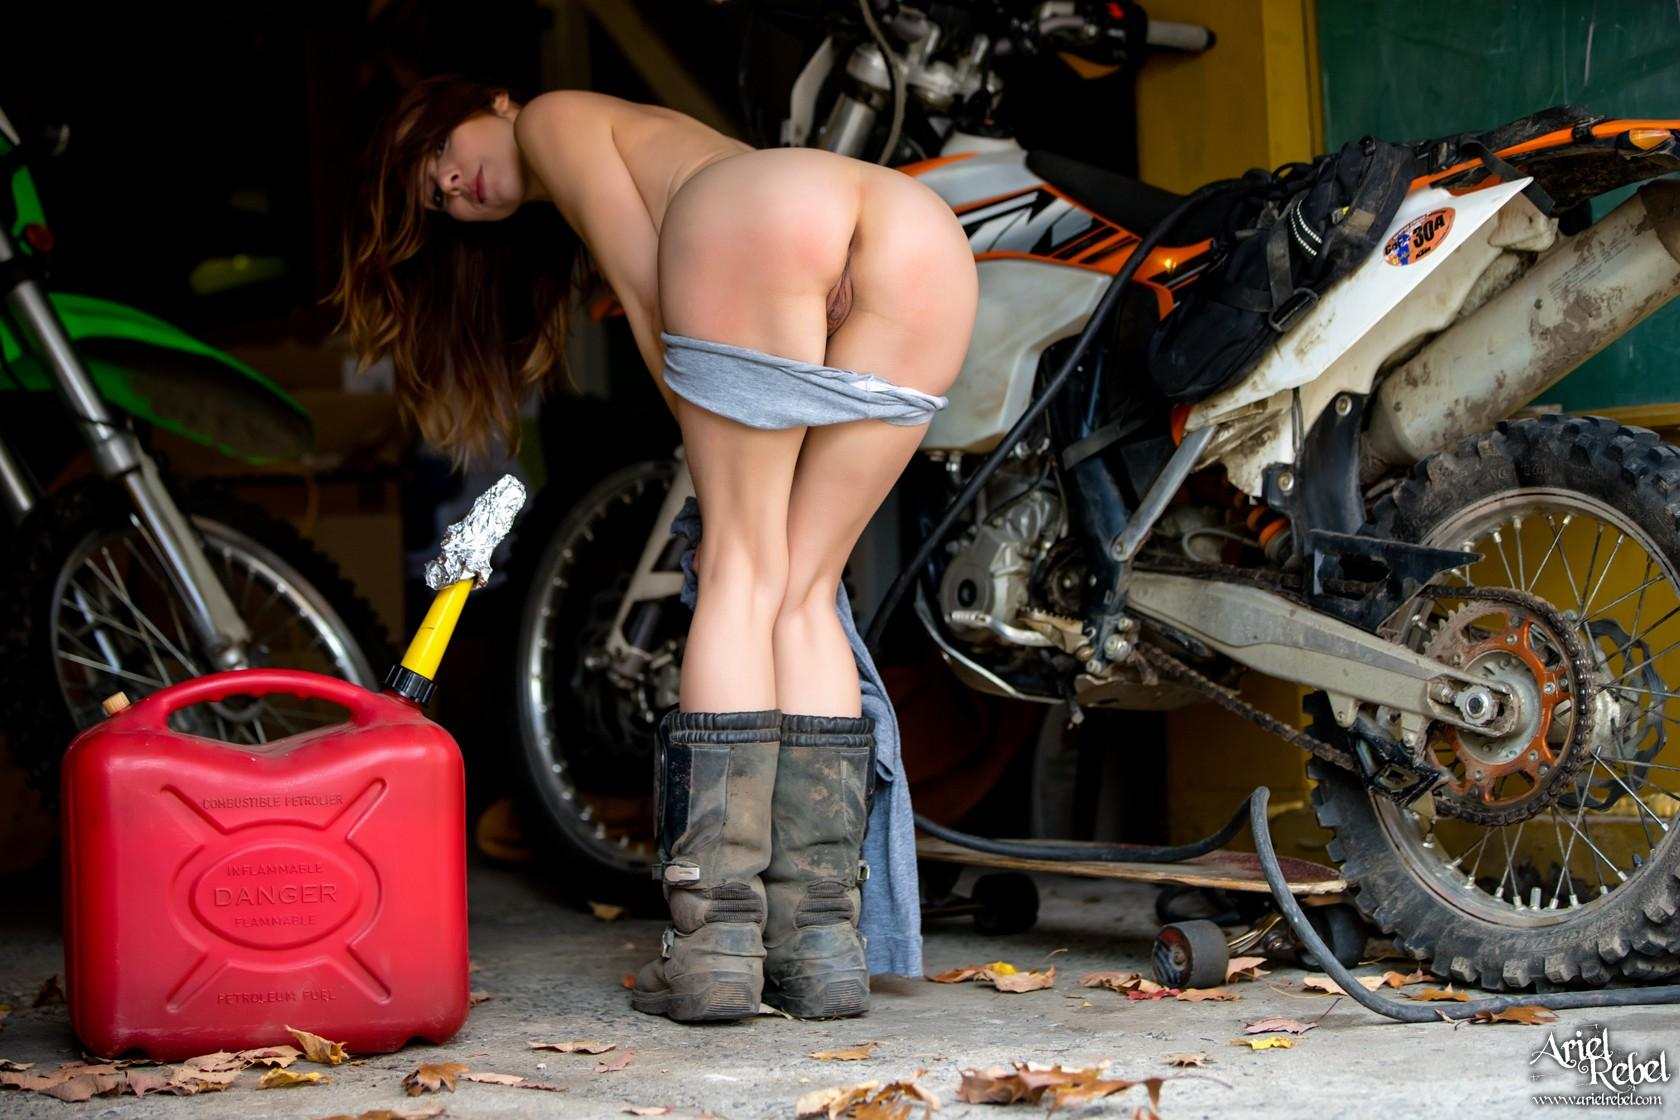 sexy ariel gets kinky while shes waiting for the motorcycle repair man #12